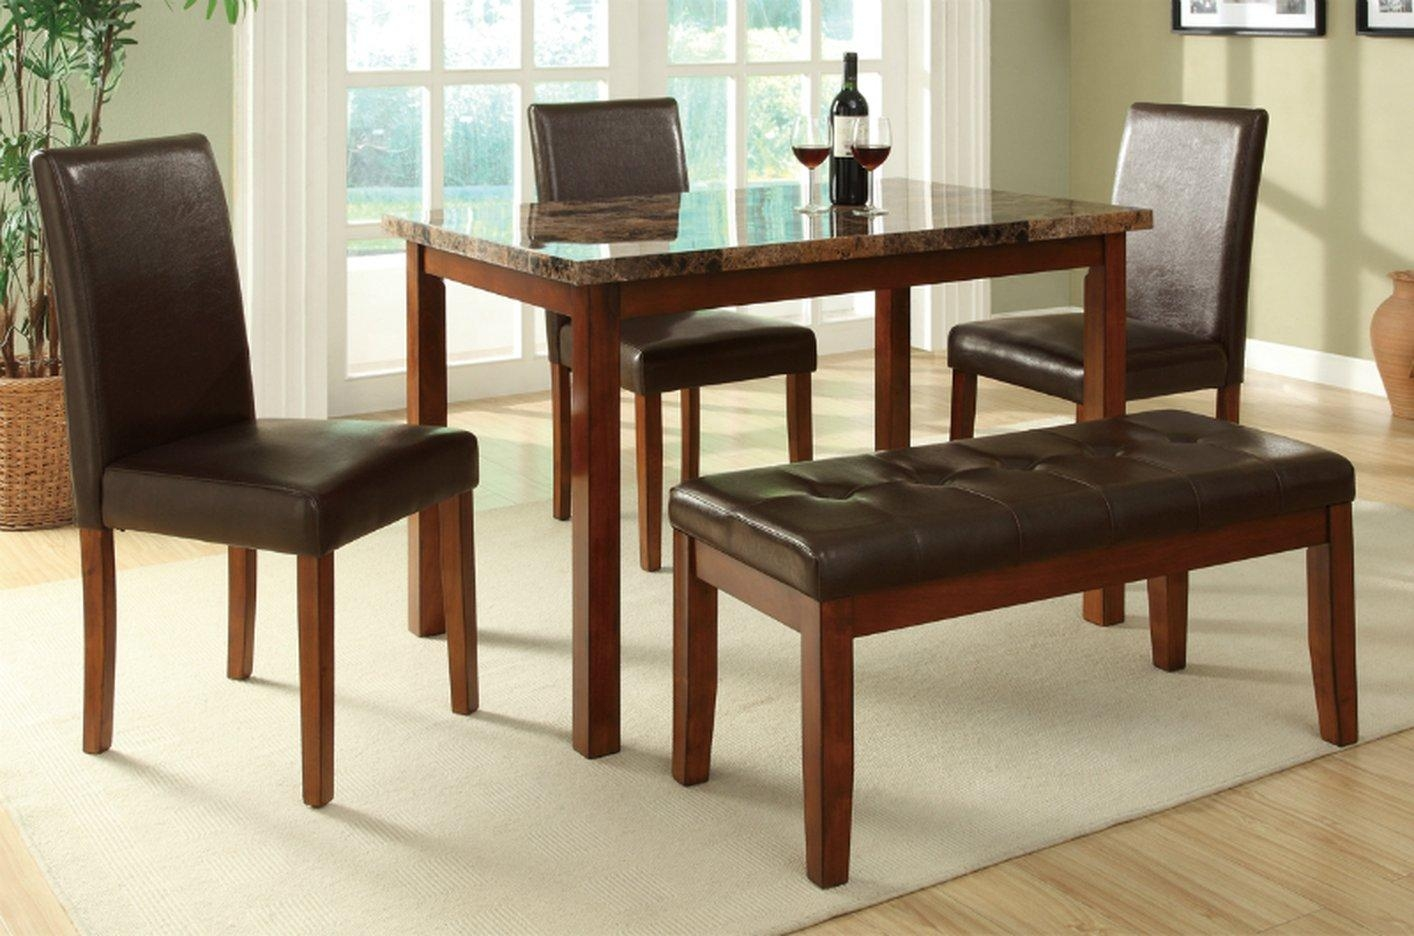 Brown Leather Dining Table And Chair Set – Steal A Sofa Furniture With Dining Table With Sofa Chairs (View 18 of 20)